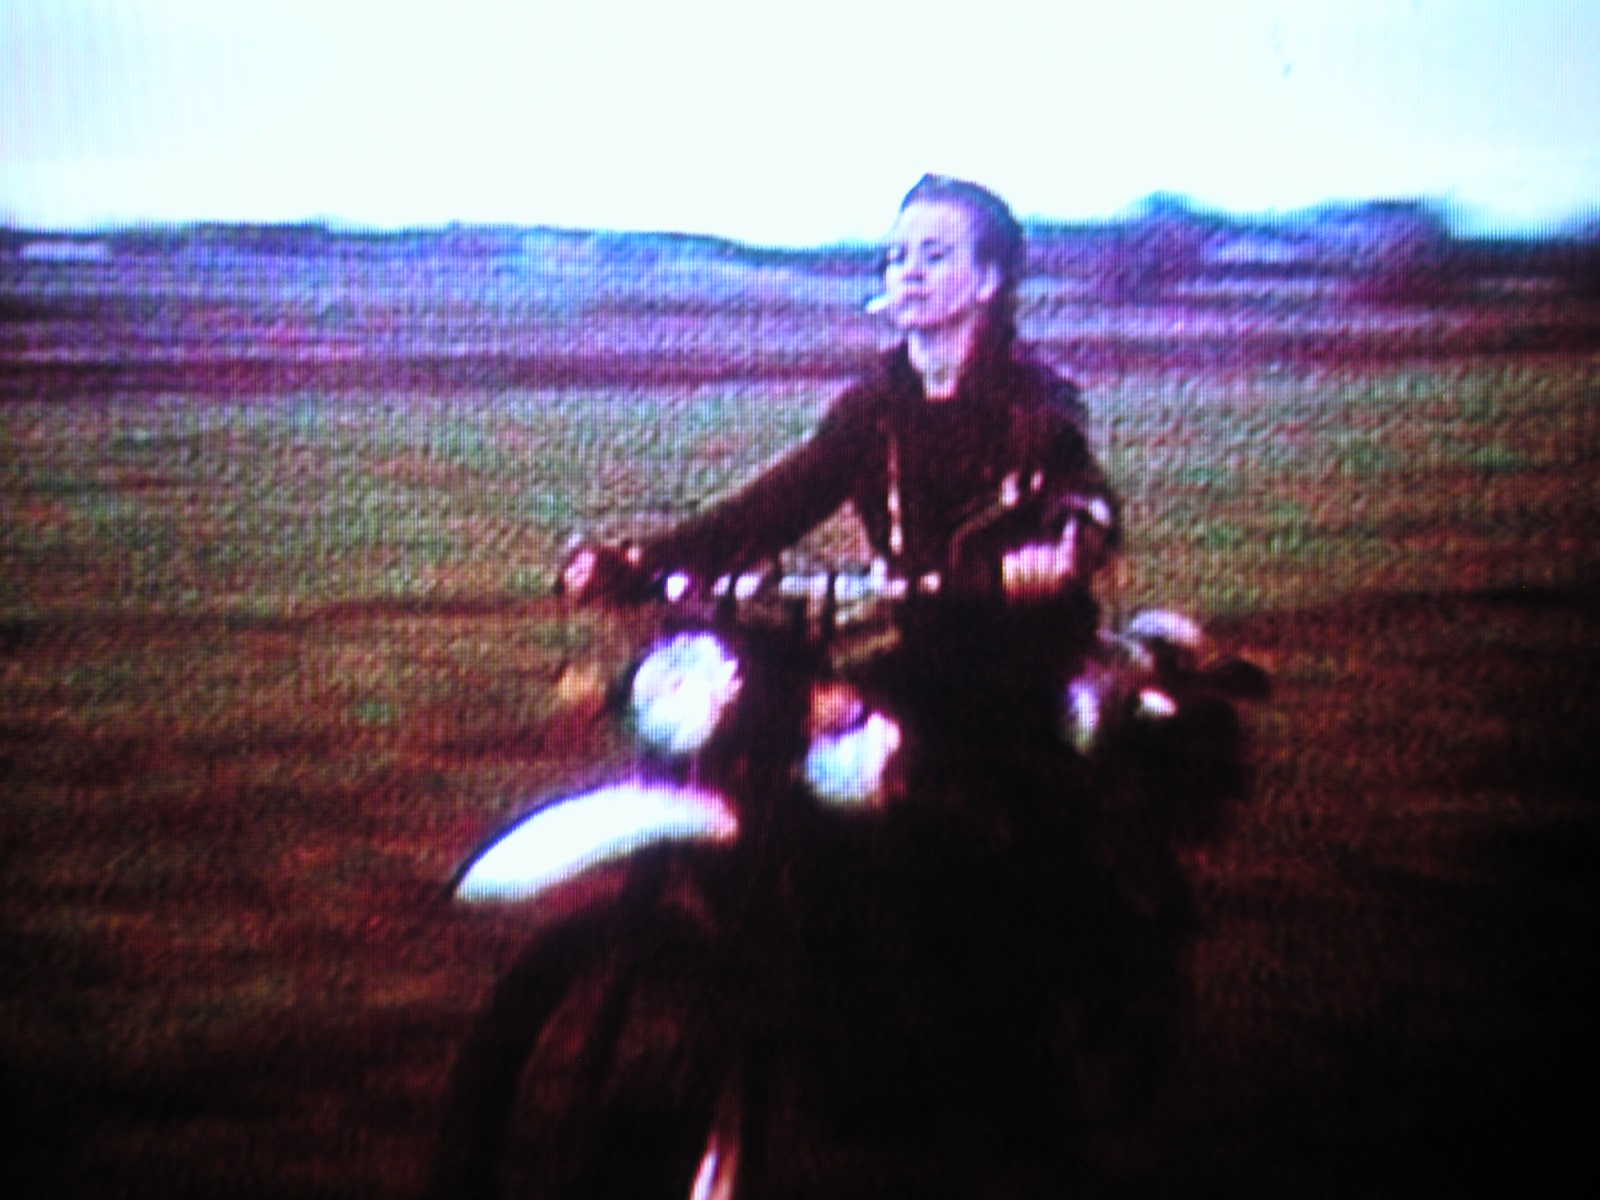 A grainy video still depicting a person riding a motorcycle with a cigarette in their mouth, in a single channel work by Hito Steyerl